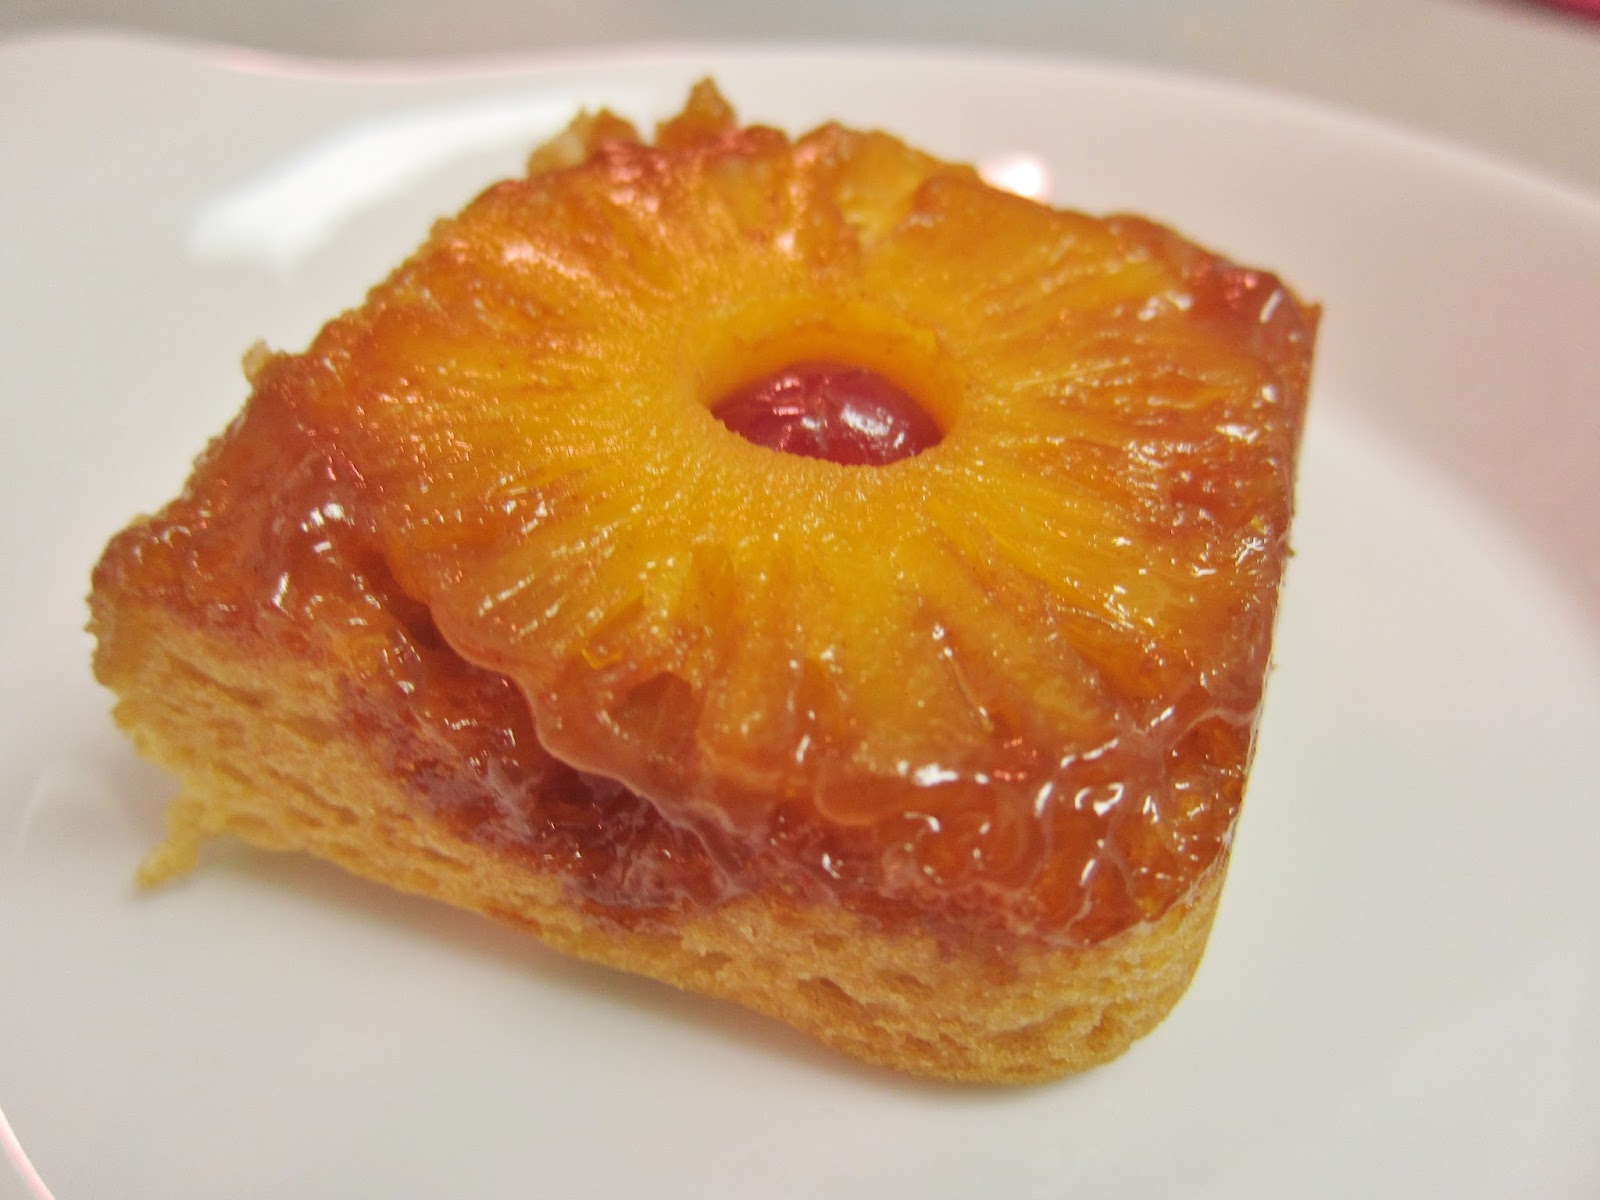 The Vegan Chronicle: Pineapple Upside-Down Cake